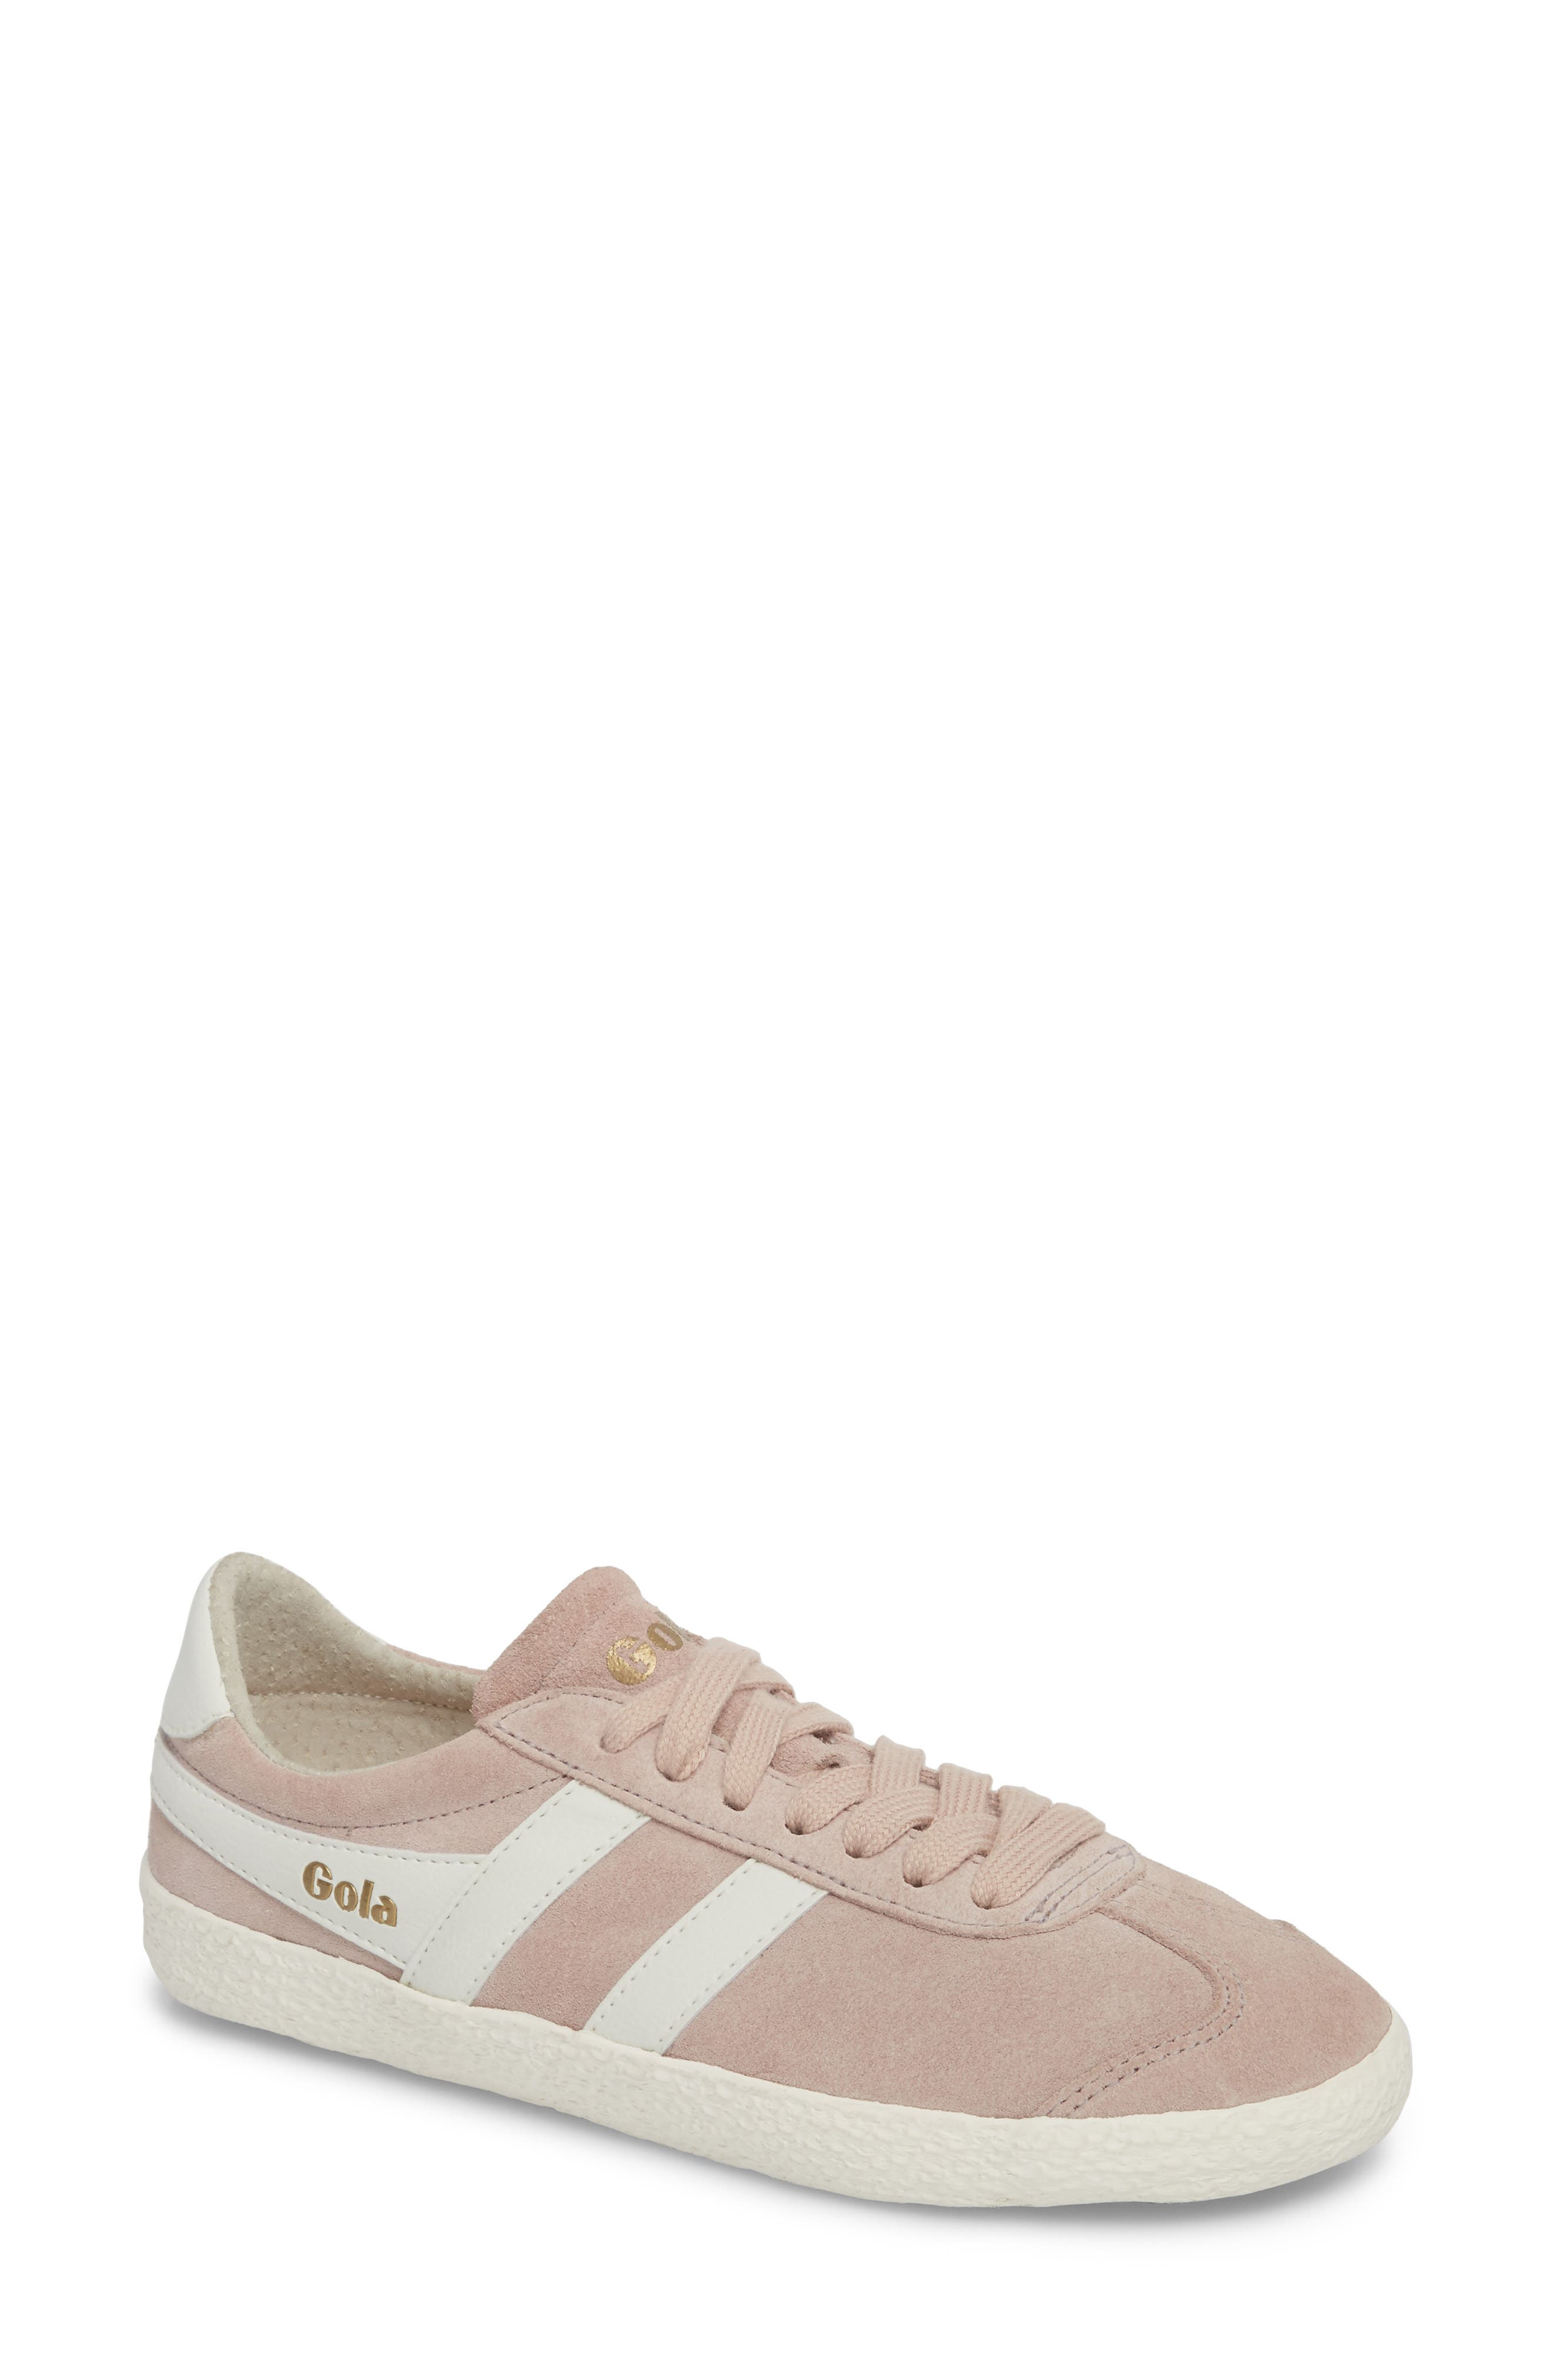 Specialist Low Top Sneaker,                         Main,                         color, BLOSSOM/ OFF WHITE